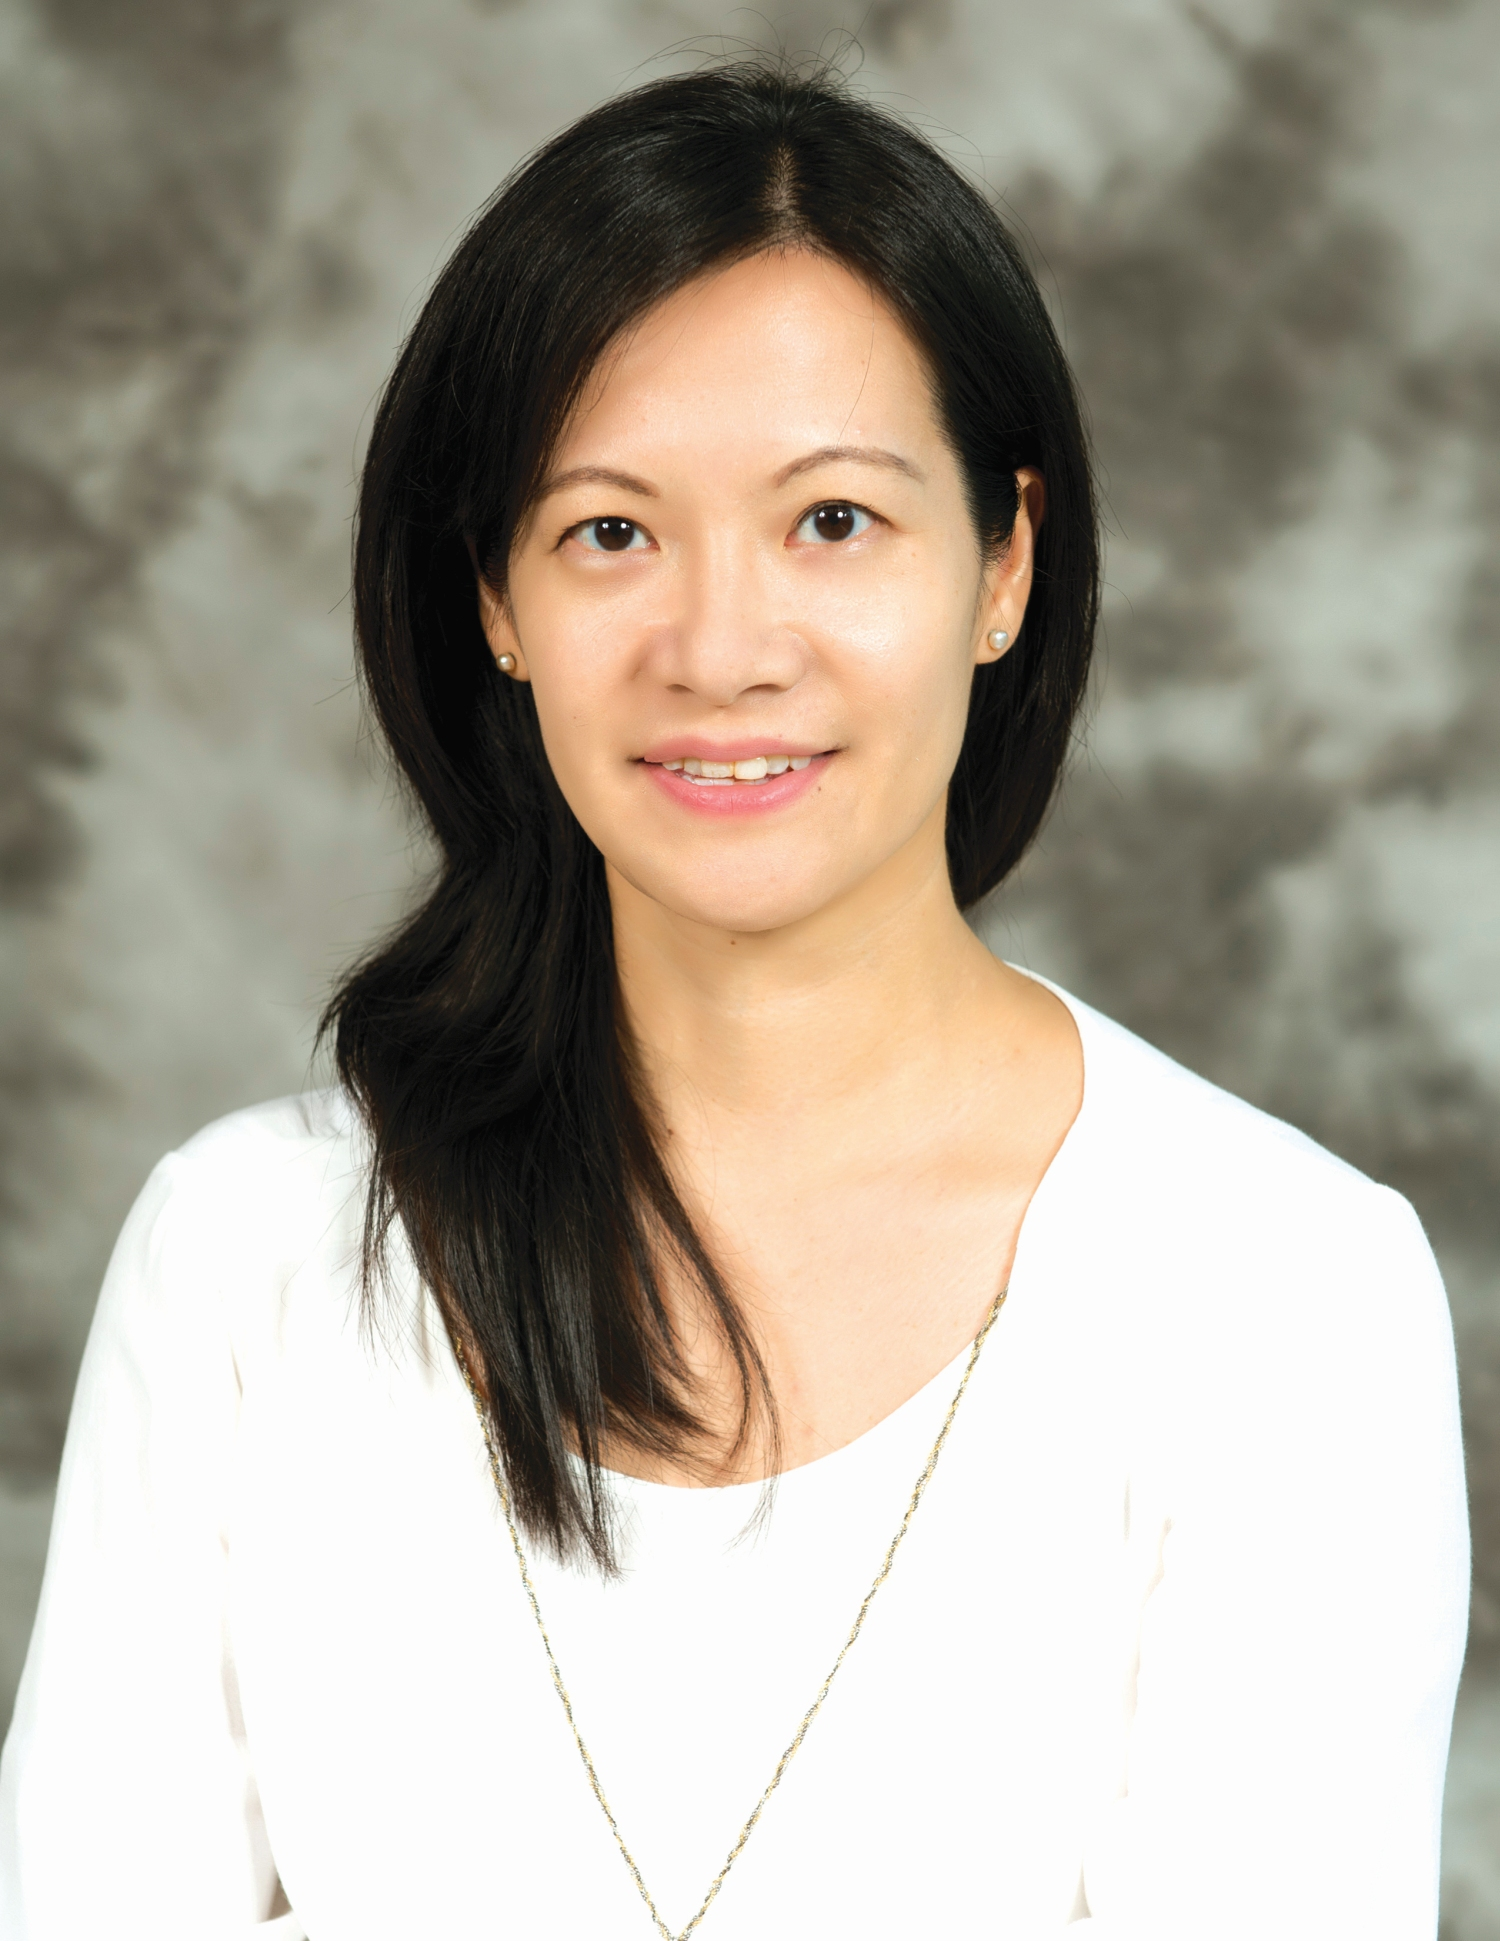 Dr. Carmen Wong, Assistant Dean (Education) of the Faculty of Medicine, CUHK, has been awarded the 2020 UGC Teaching Award (General Faculty Members) this year.